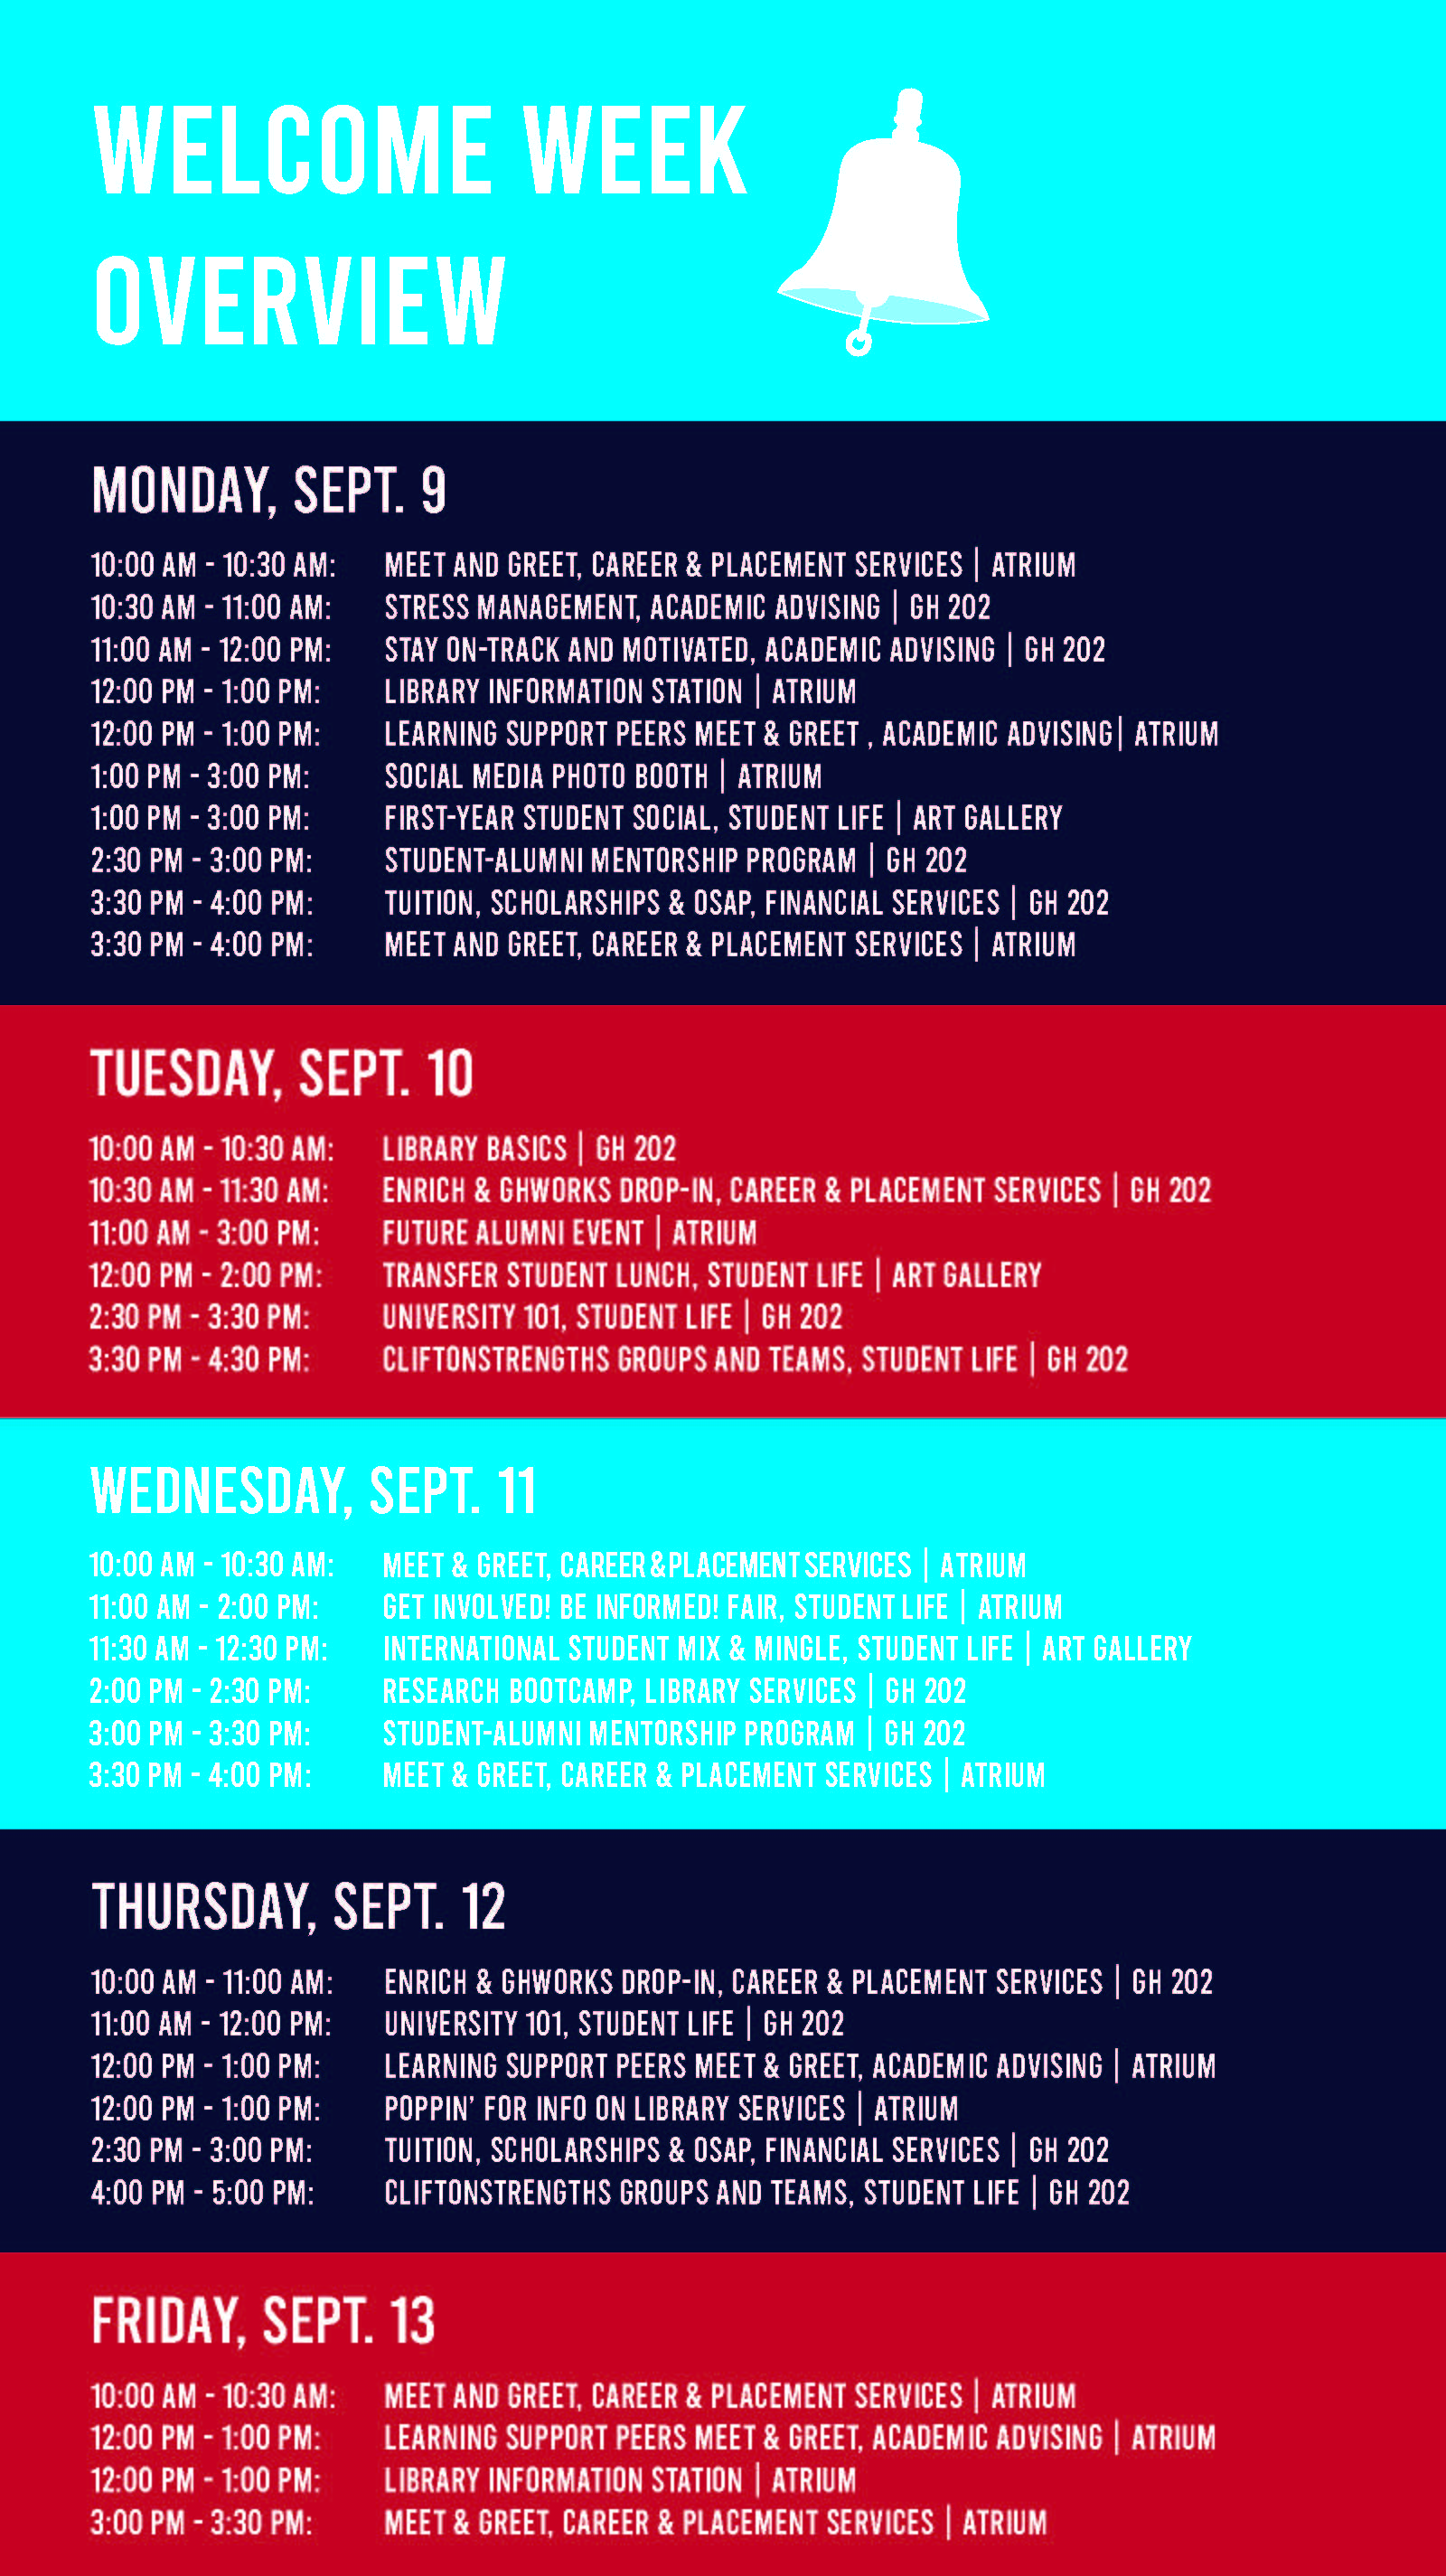 Welcome Week schedule